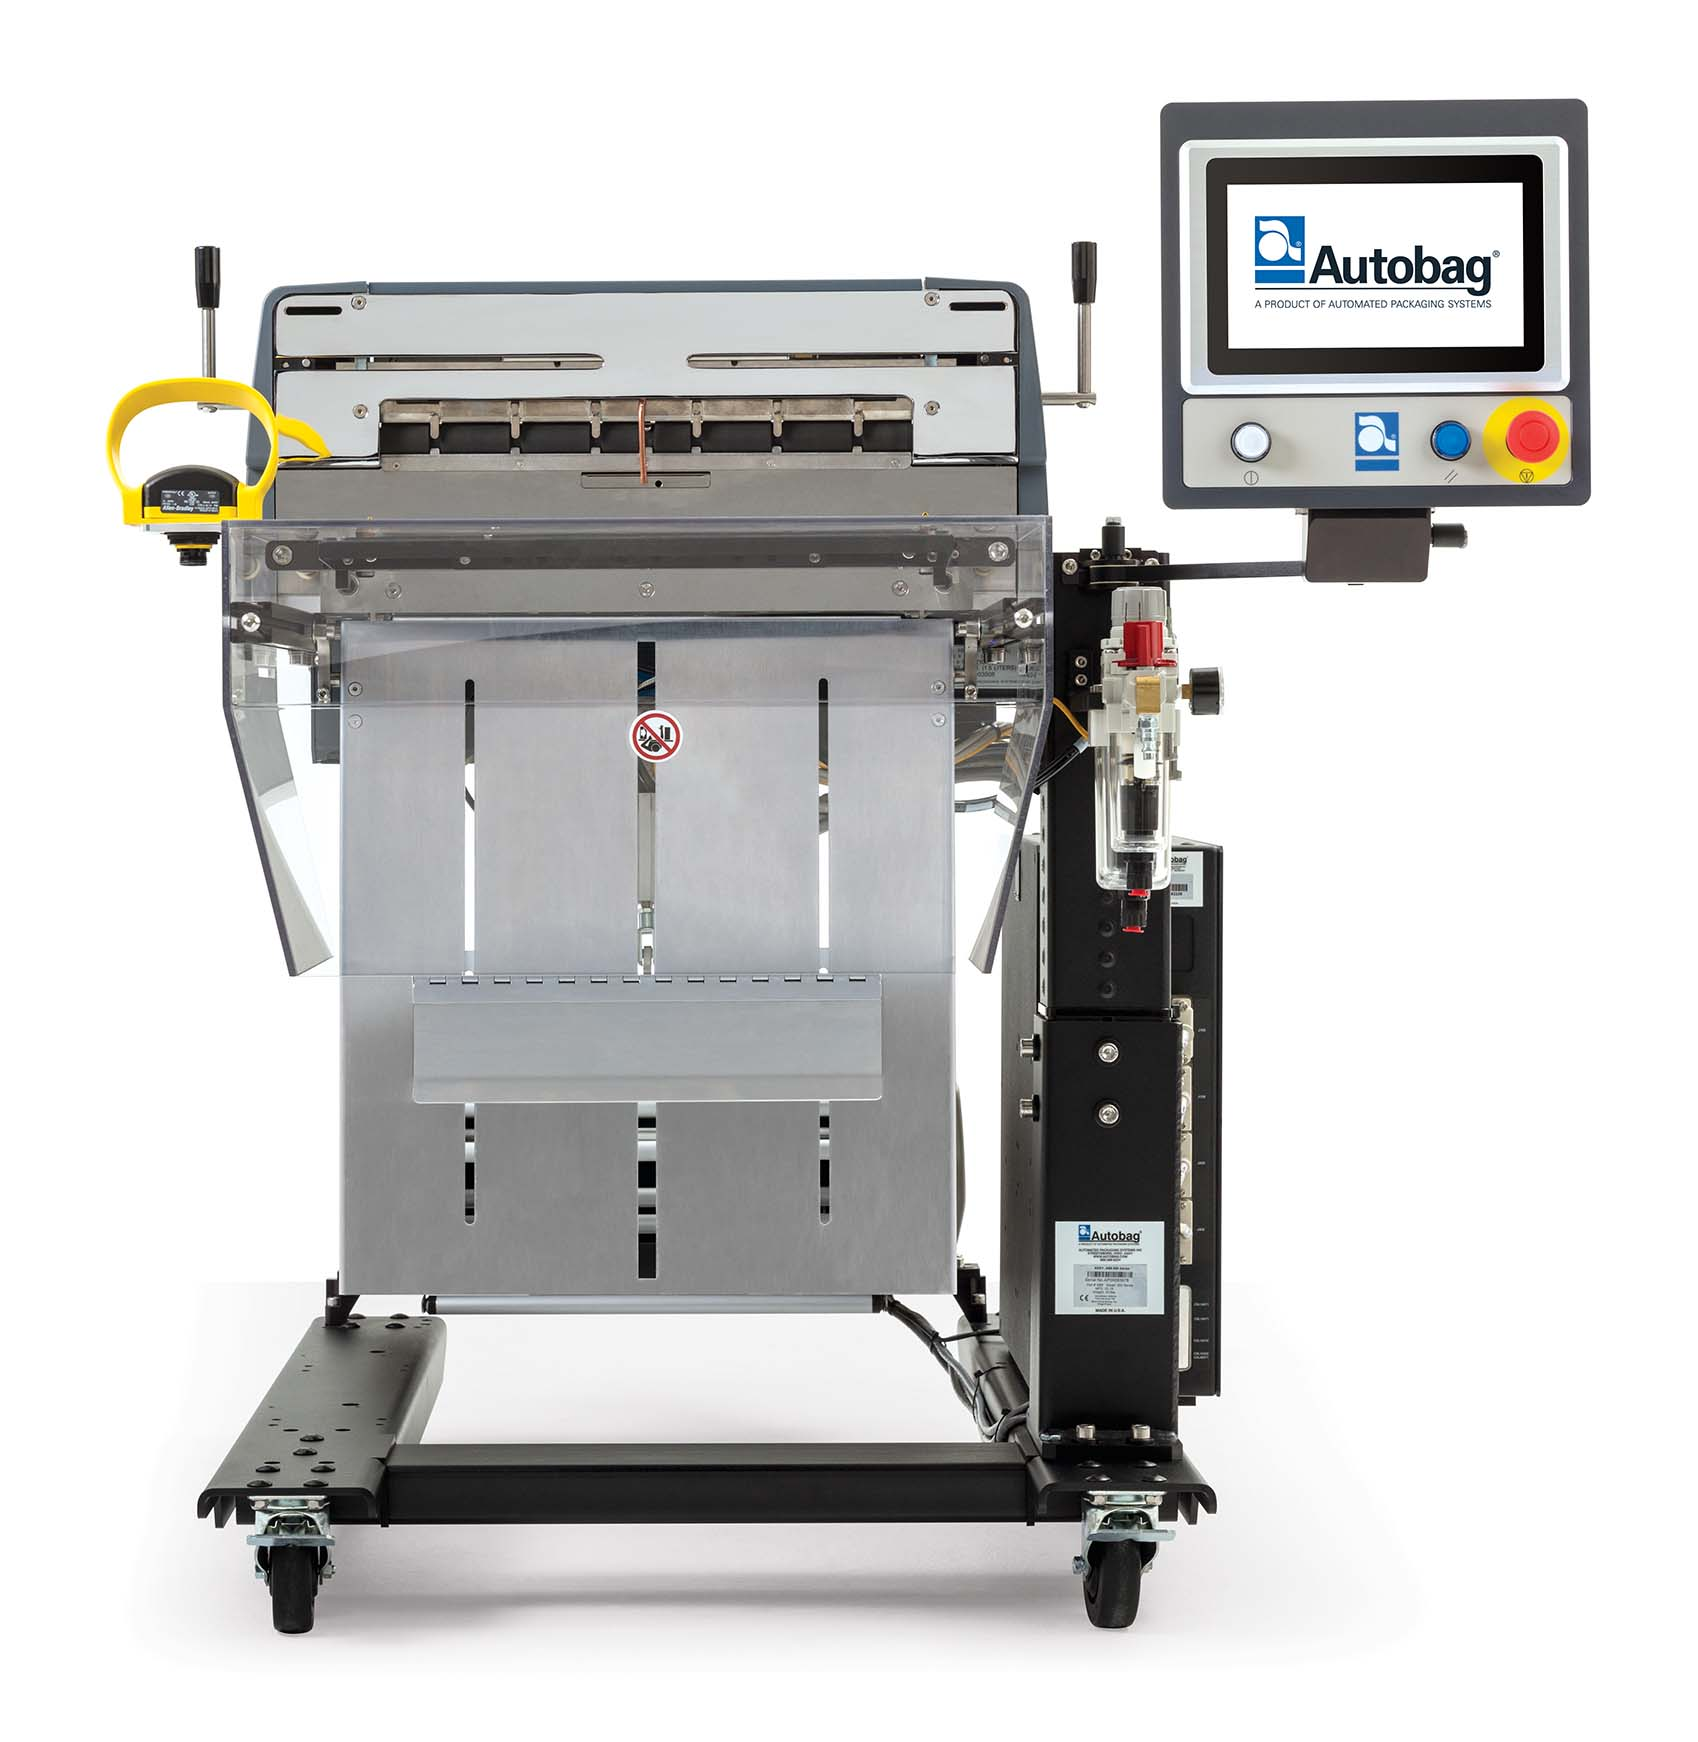 Autobag 600 packaging machine for large bags front view